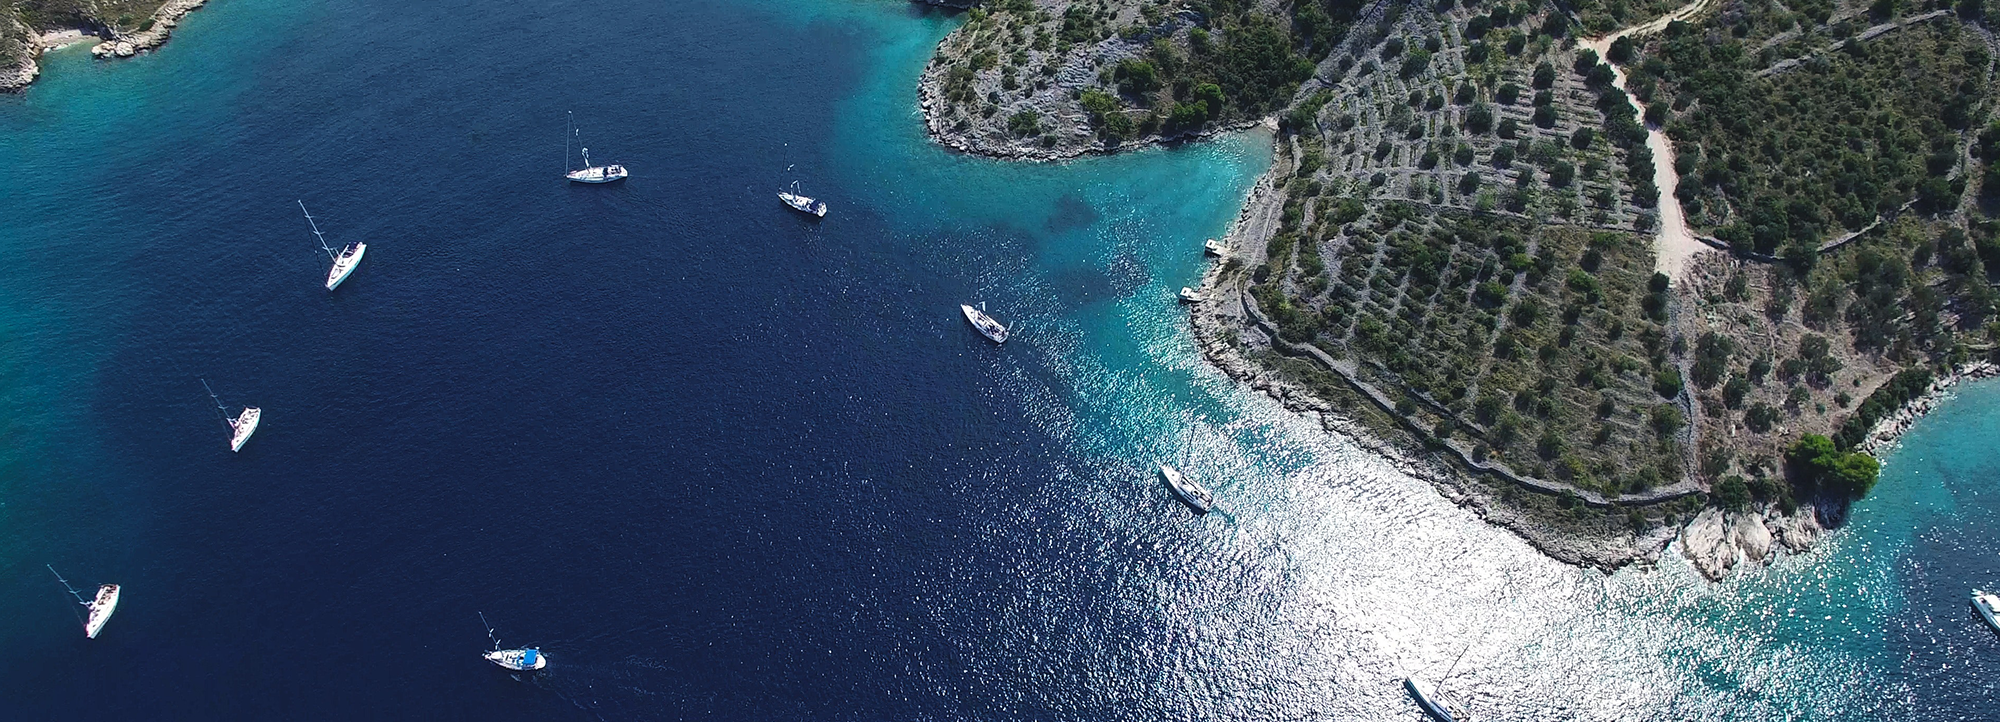 Drone footage of the yachts